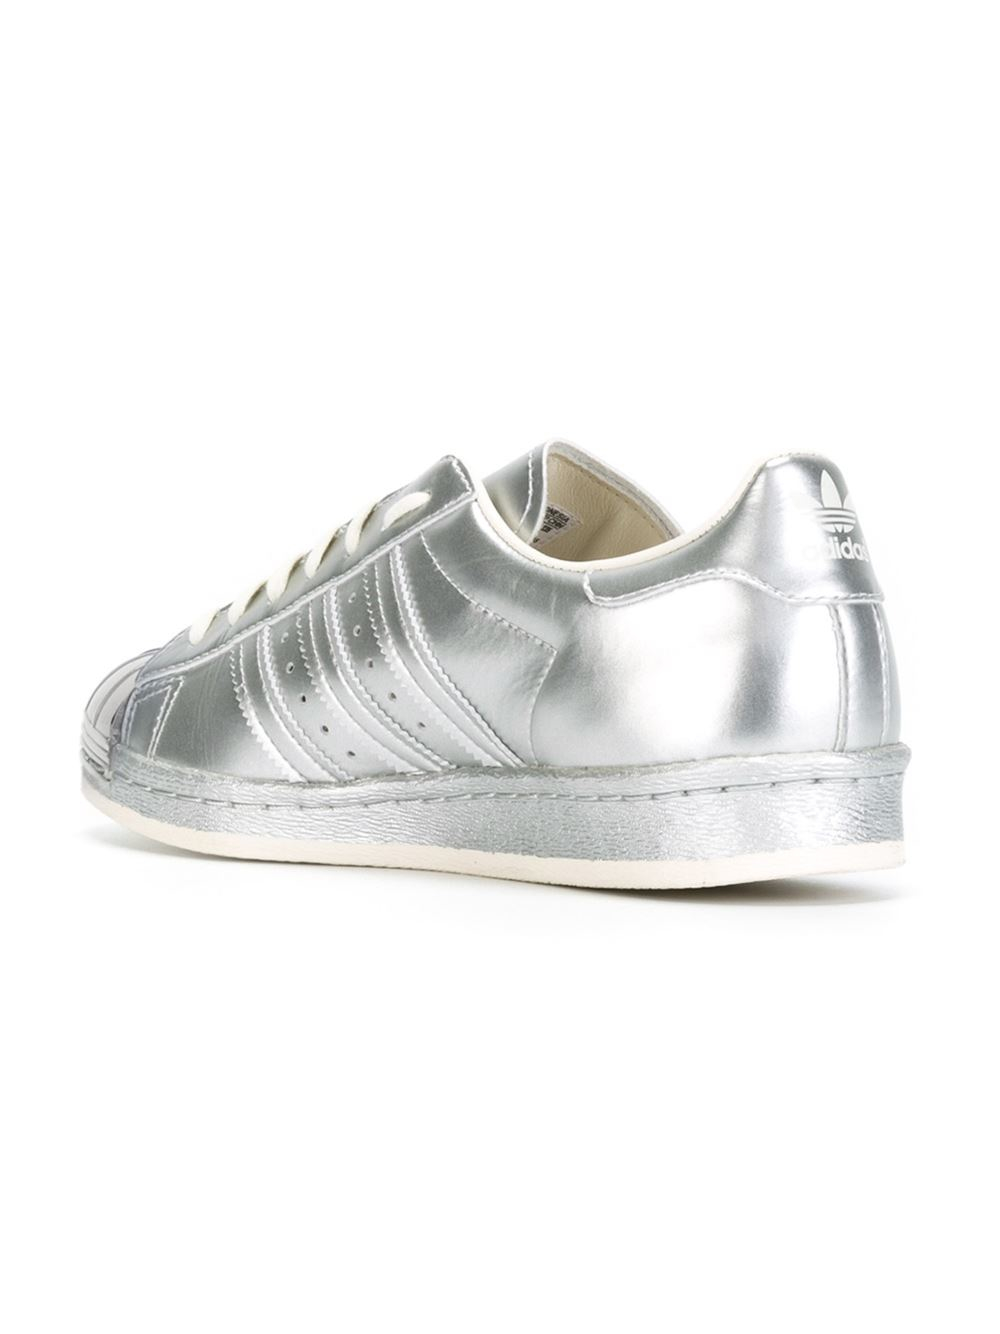 fbxpk Adidas originals \'superstar 80s\' Sneakers in Metallic | Lyst